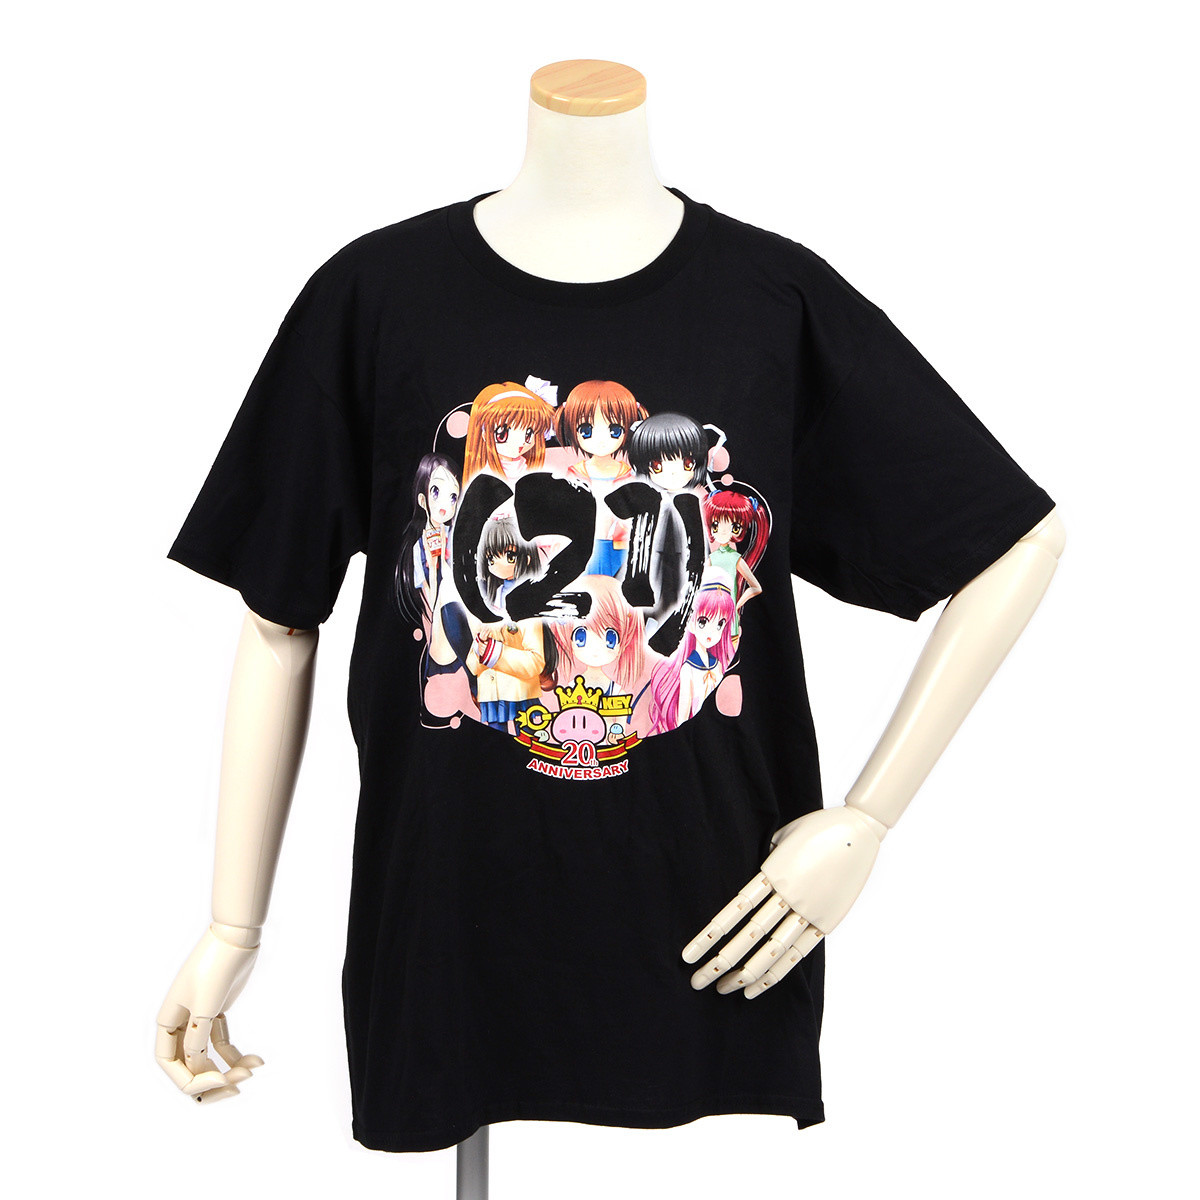 Key 20th Anniversary(21)Tシャツ